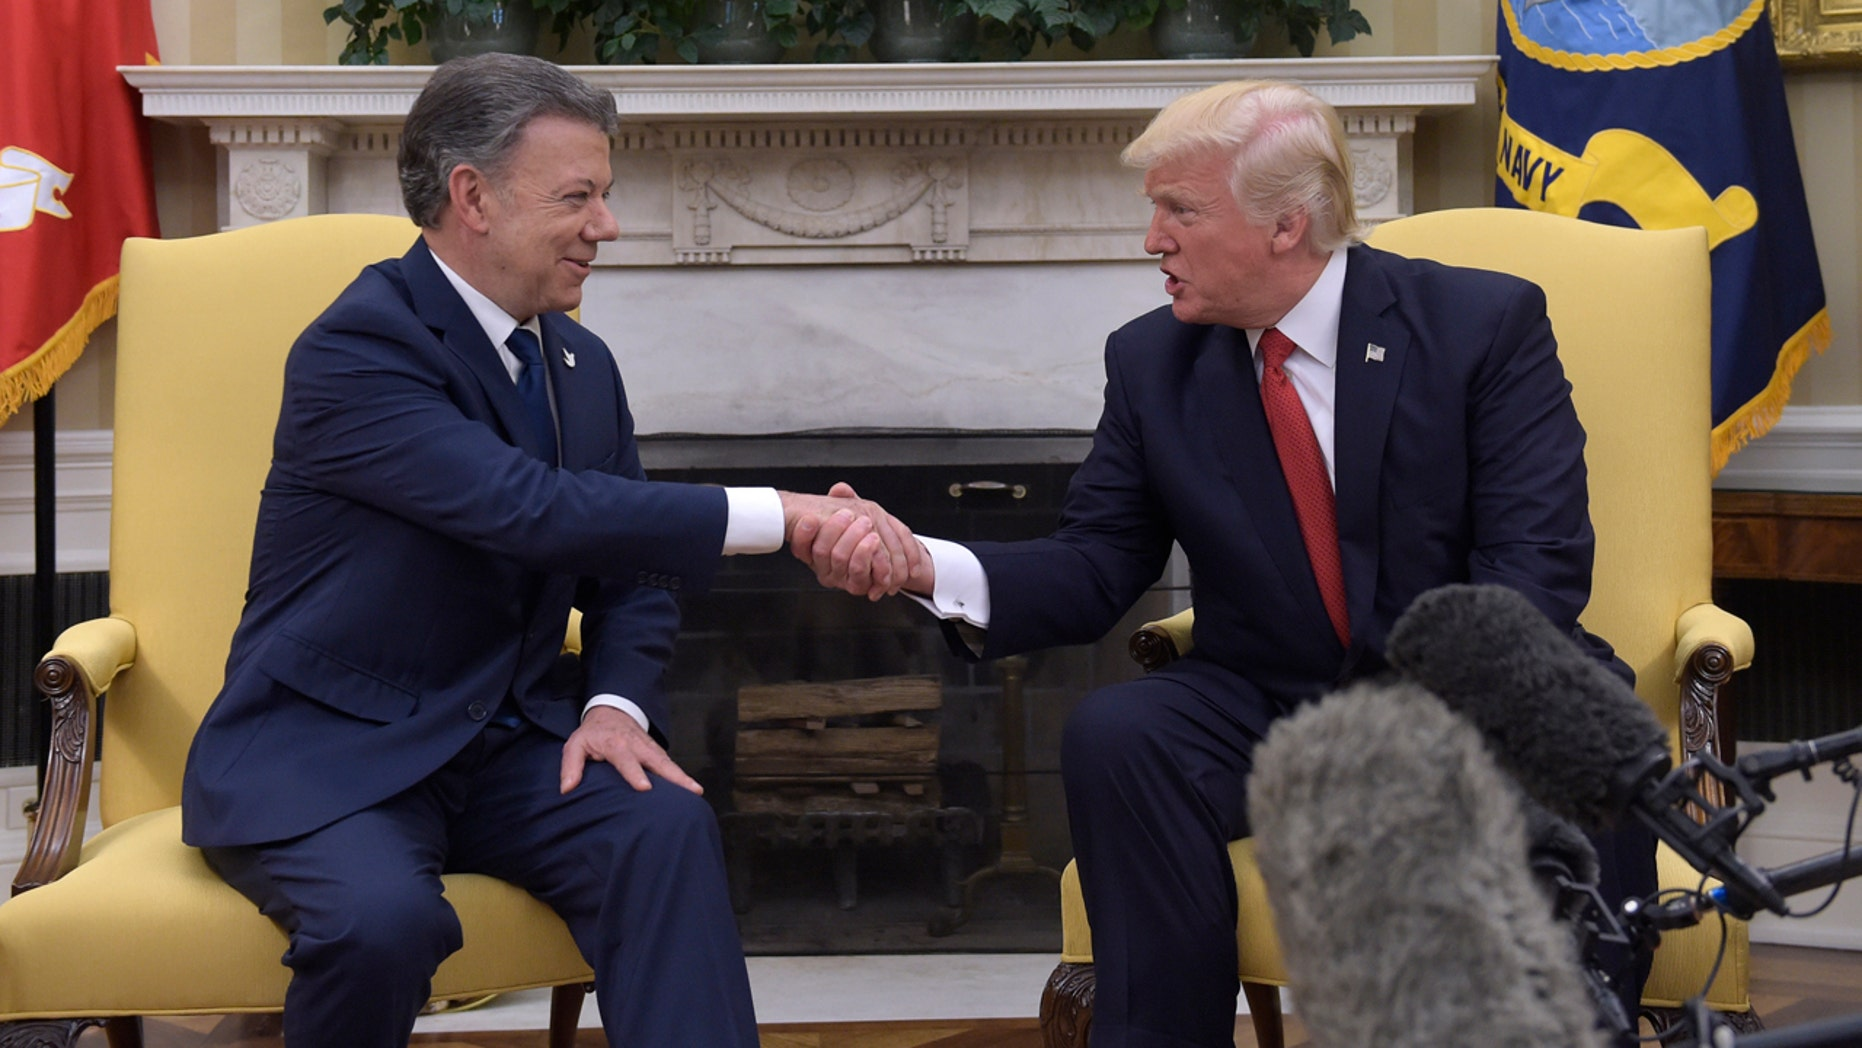 President Donald Trump meets with Colombian President Juan Manuel Santos in the Oval Office of the White House in Washington, Thursday, May 18, 2017. (AP Photo/Susan Walsh)